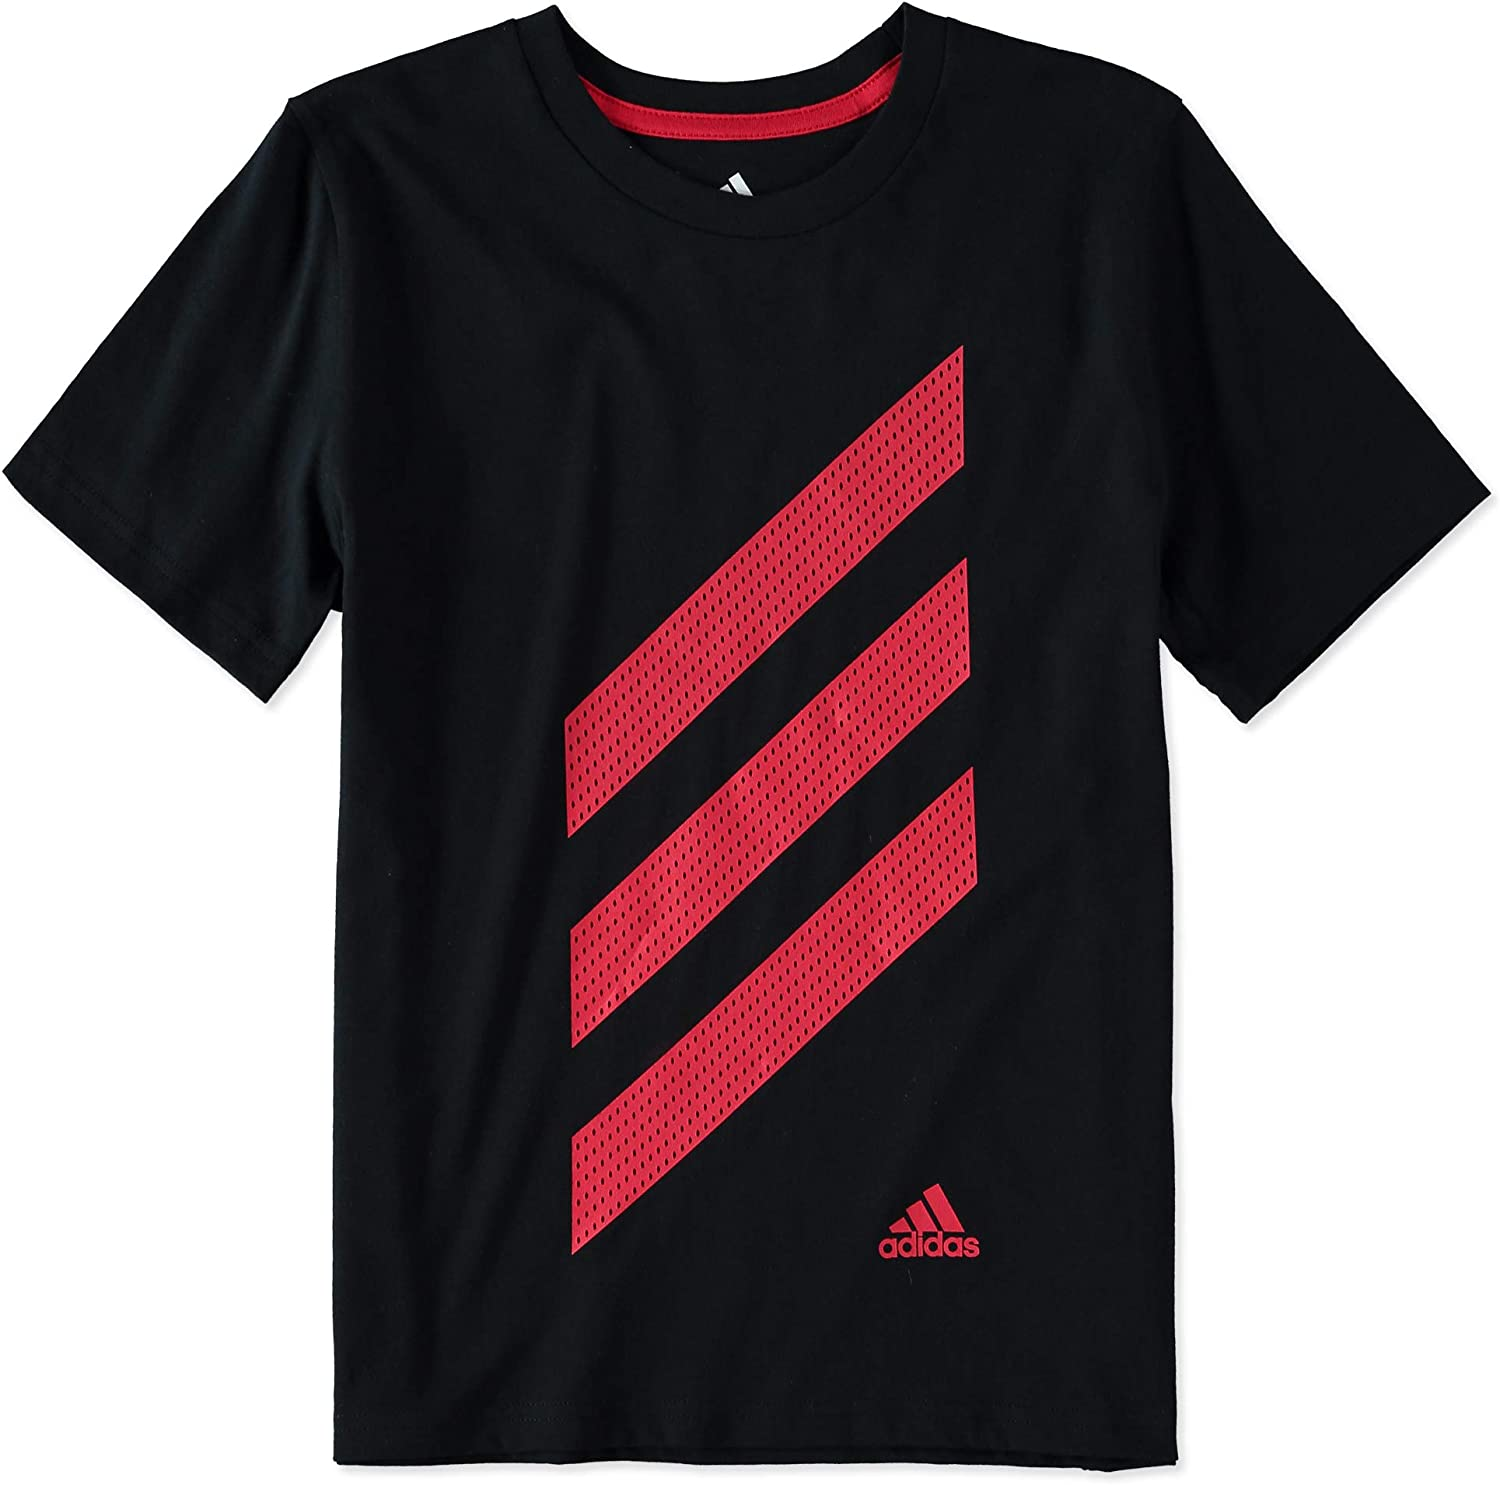 KIDS ADIDAS PRE POLY TEE AT KIDS BRANDED CLOTHING